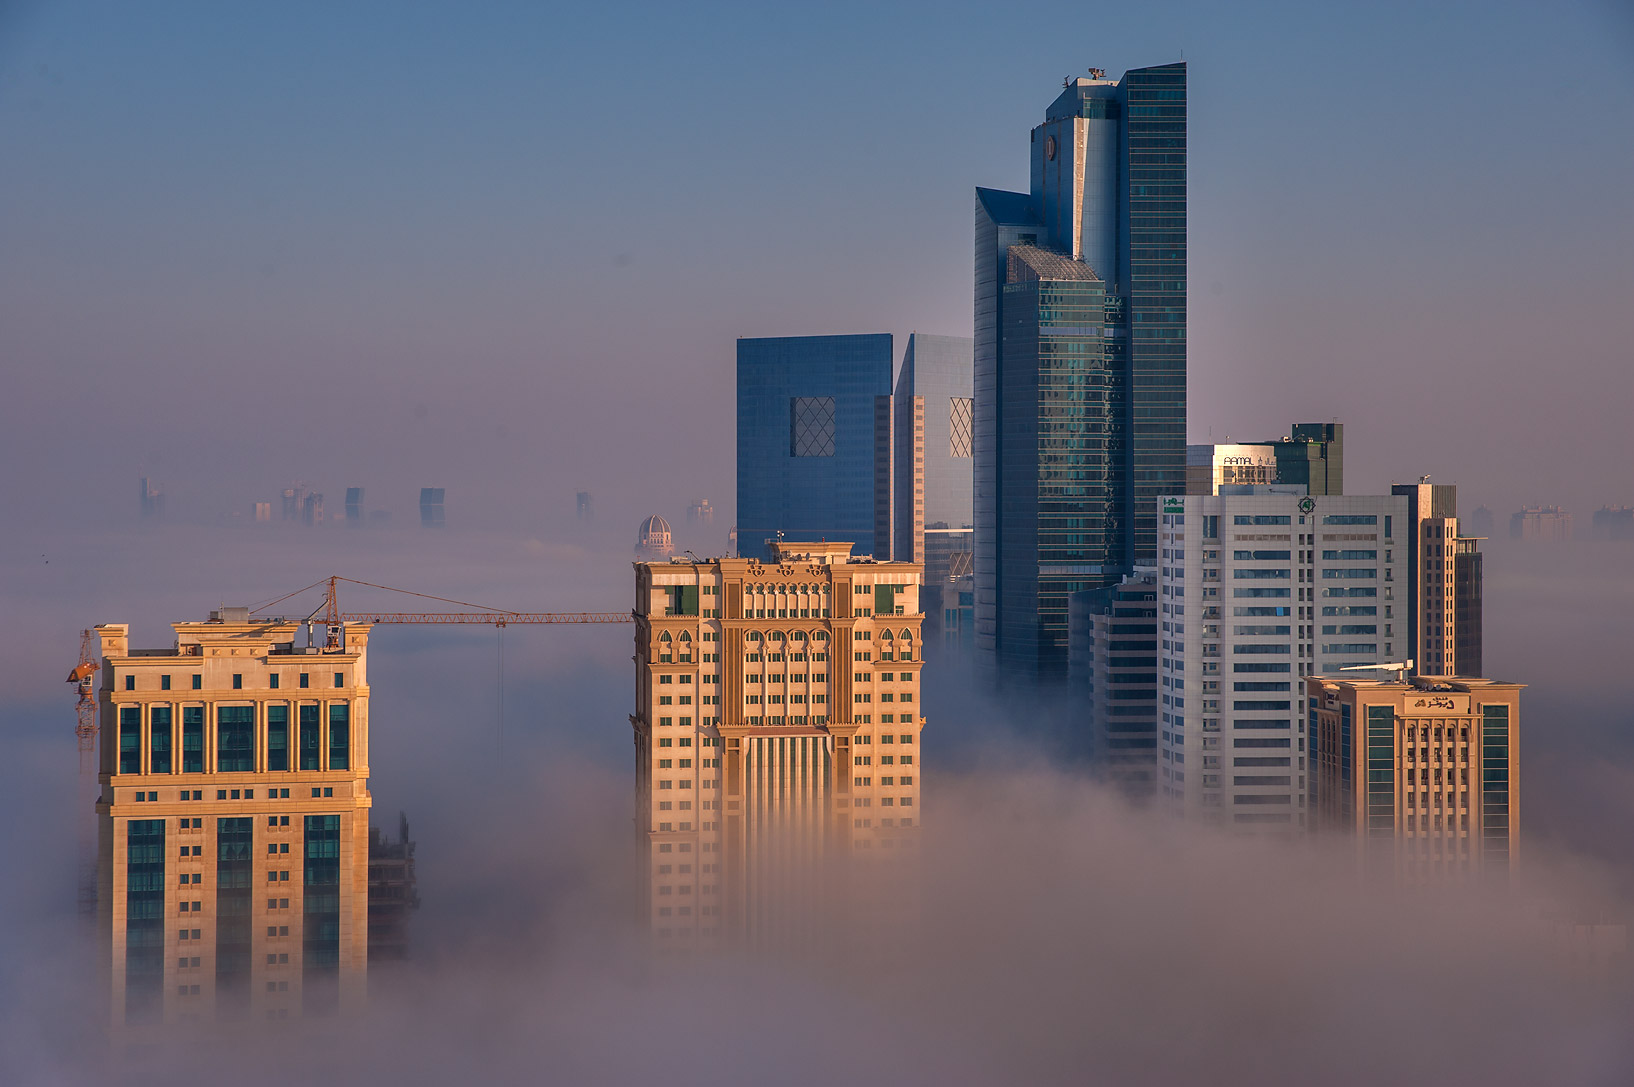 Patchy fog engulfed Silhouette Tower from a...Dareen Tower in West Bay. Doha, Qatar